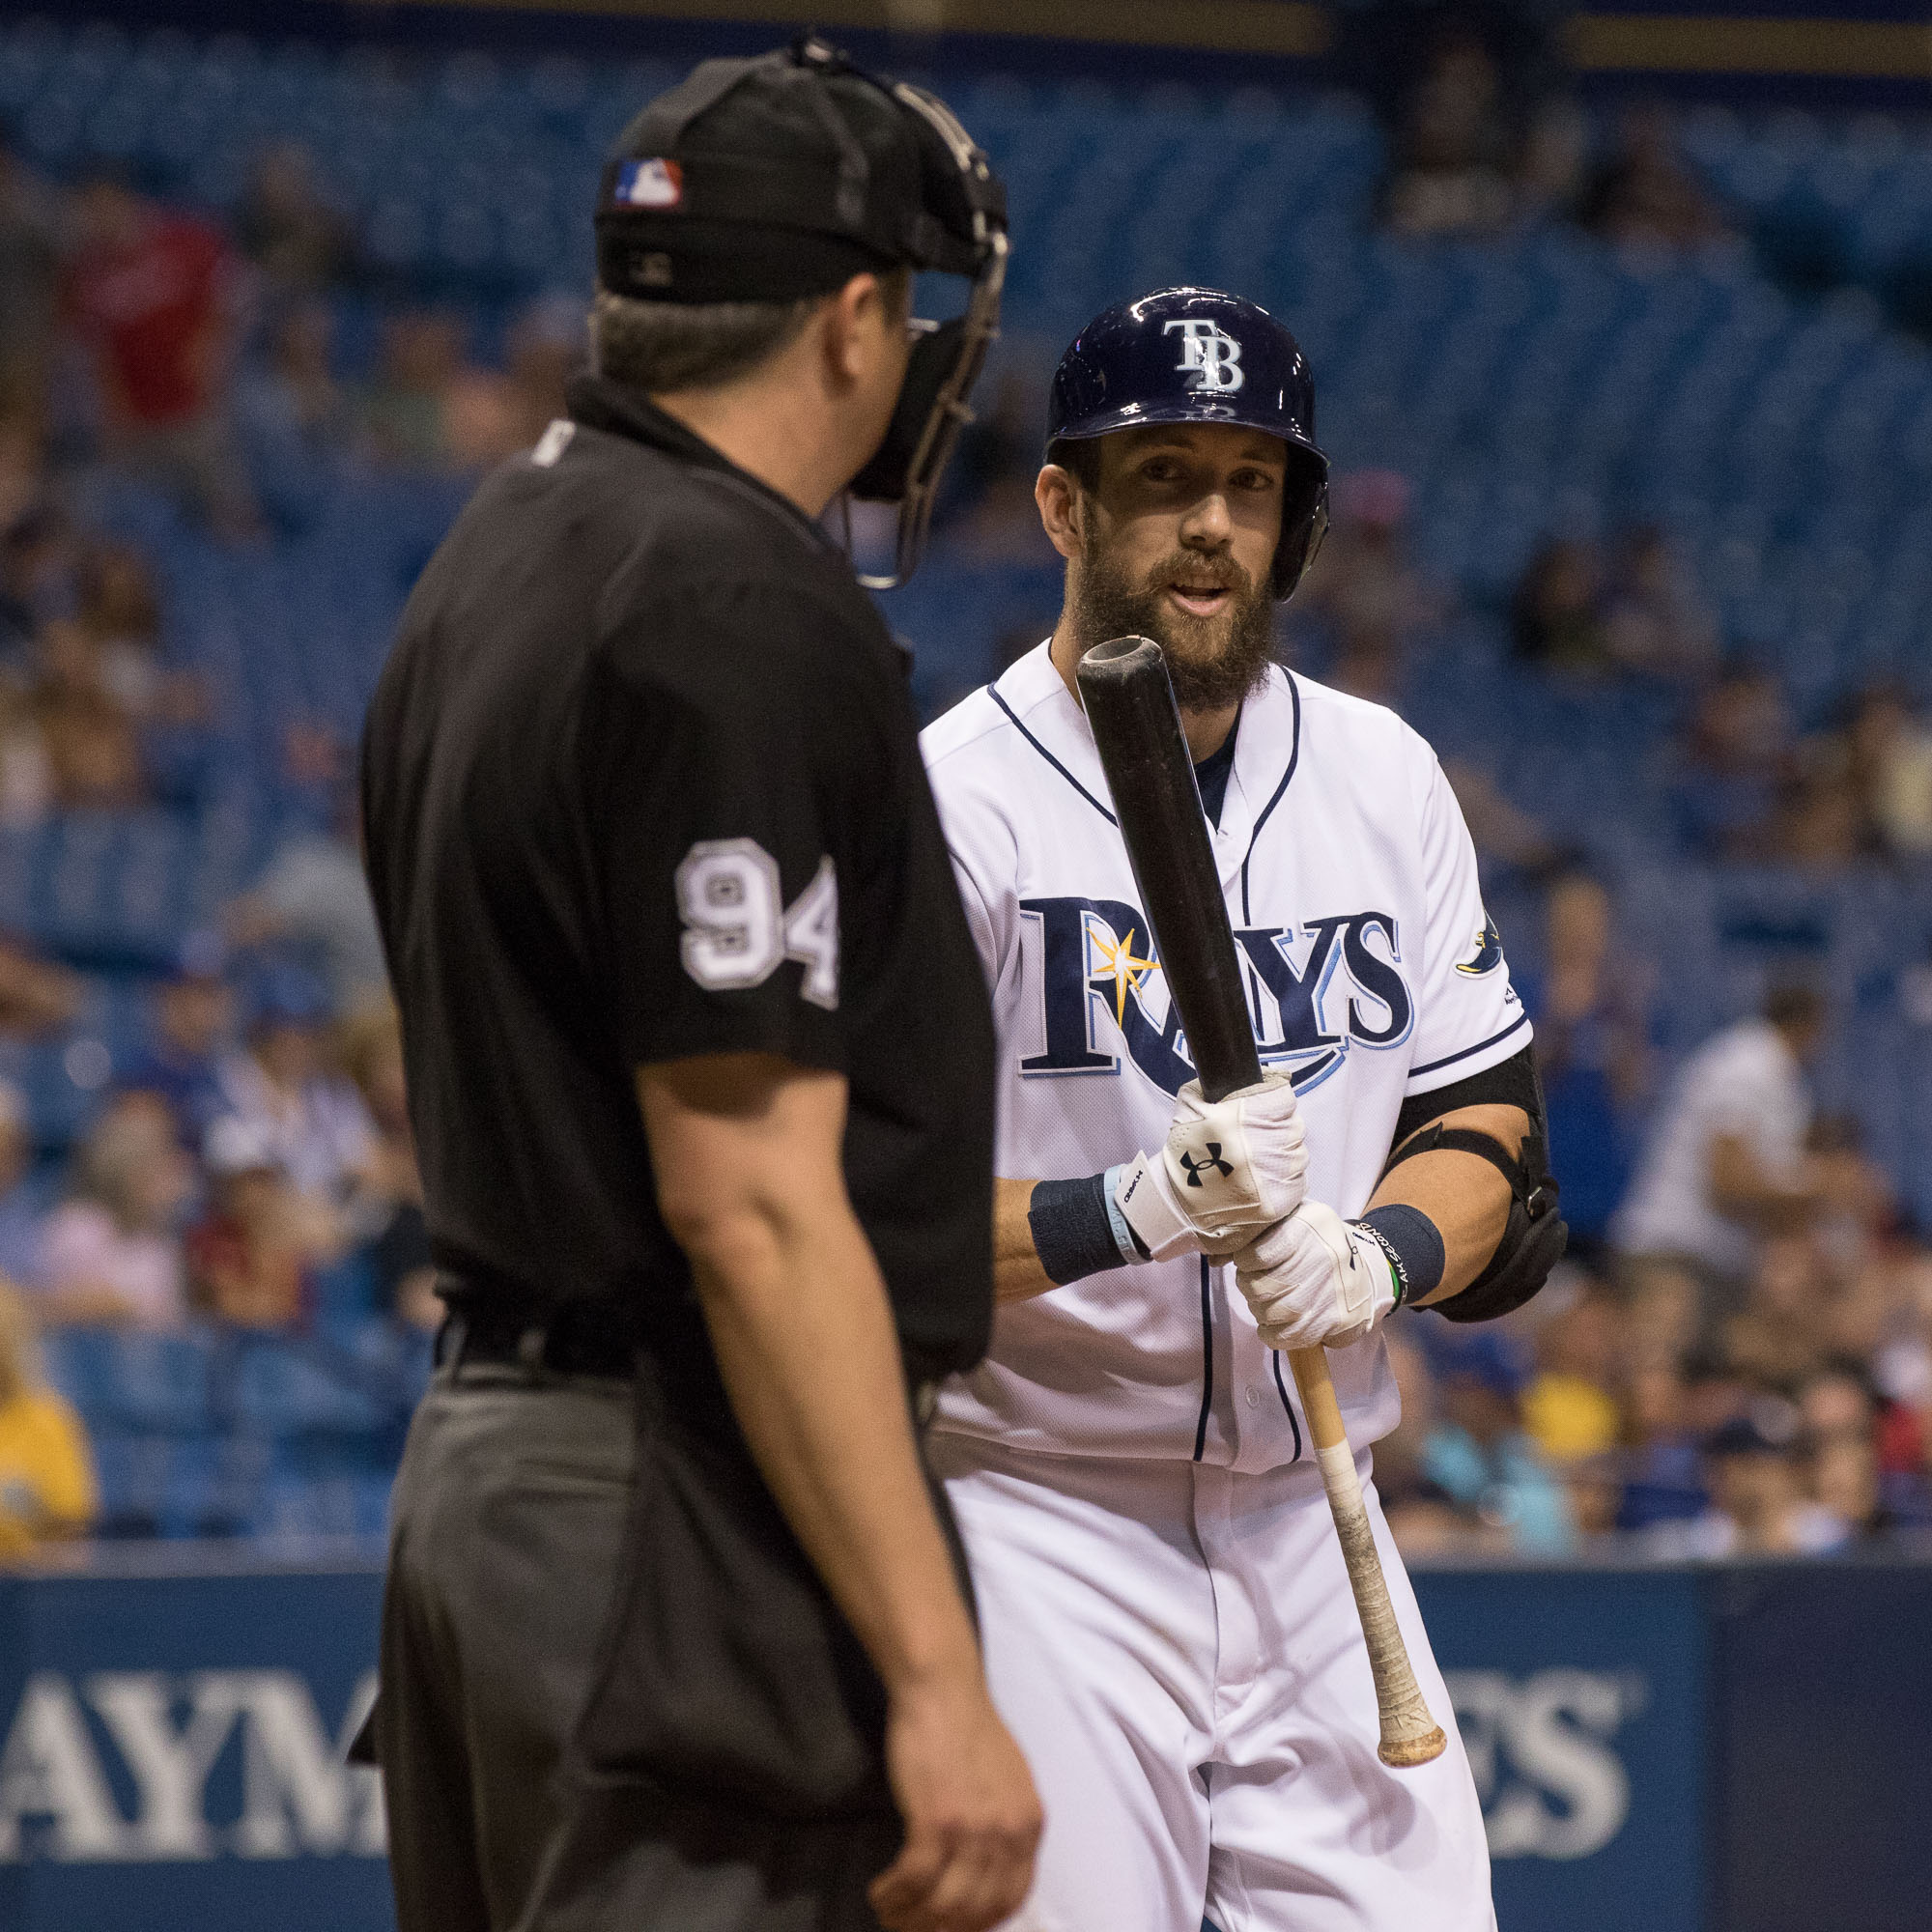 Souza Jr. argues with the umpire after a strike./STEVEN MUNCIE